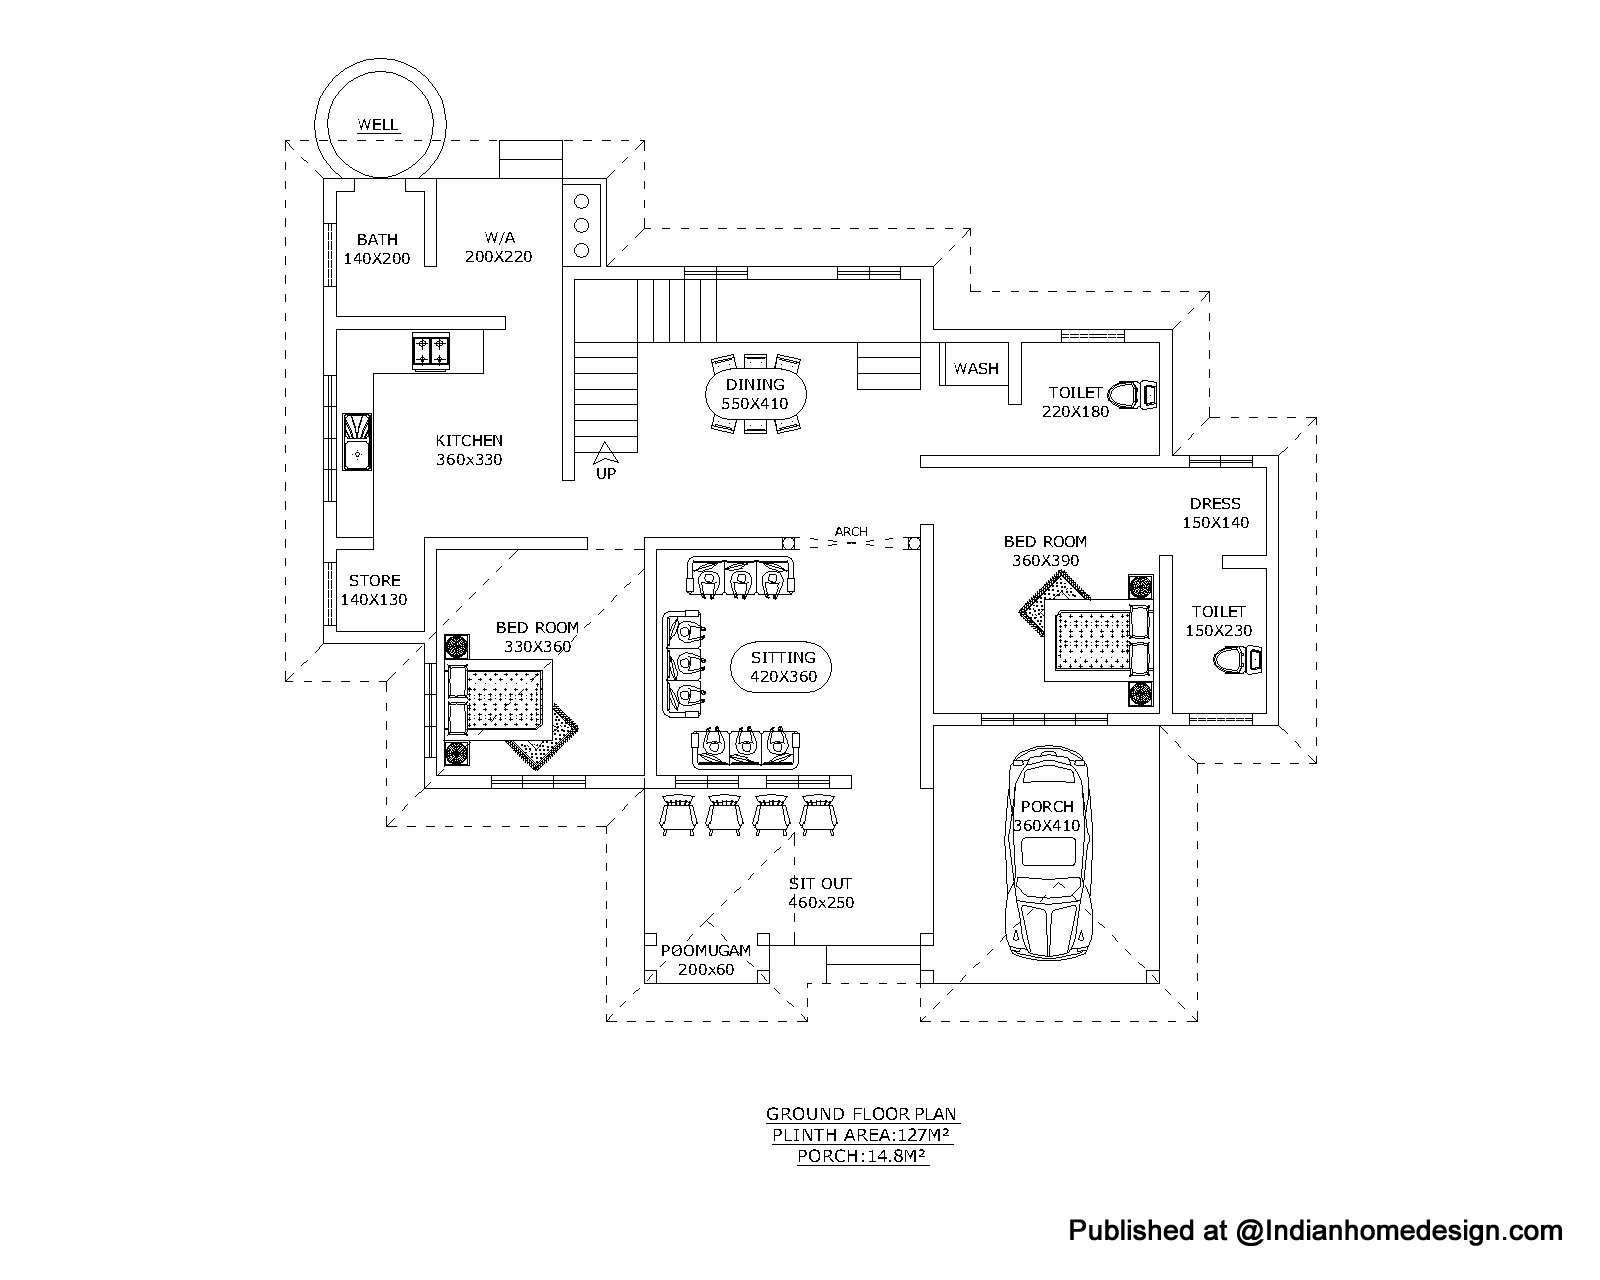 House plans and design home plans in kerala autocad format for Most popular house plans 2015